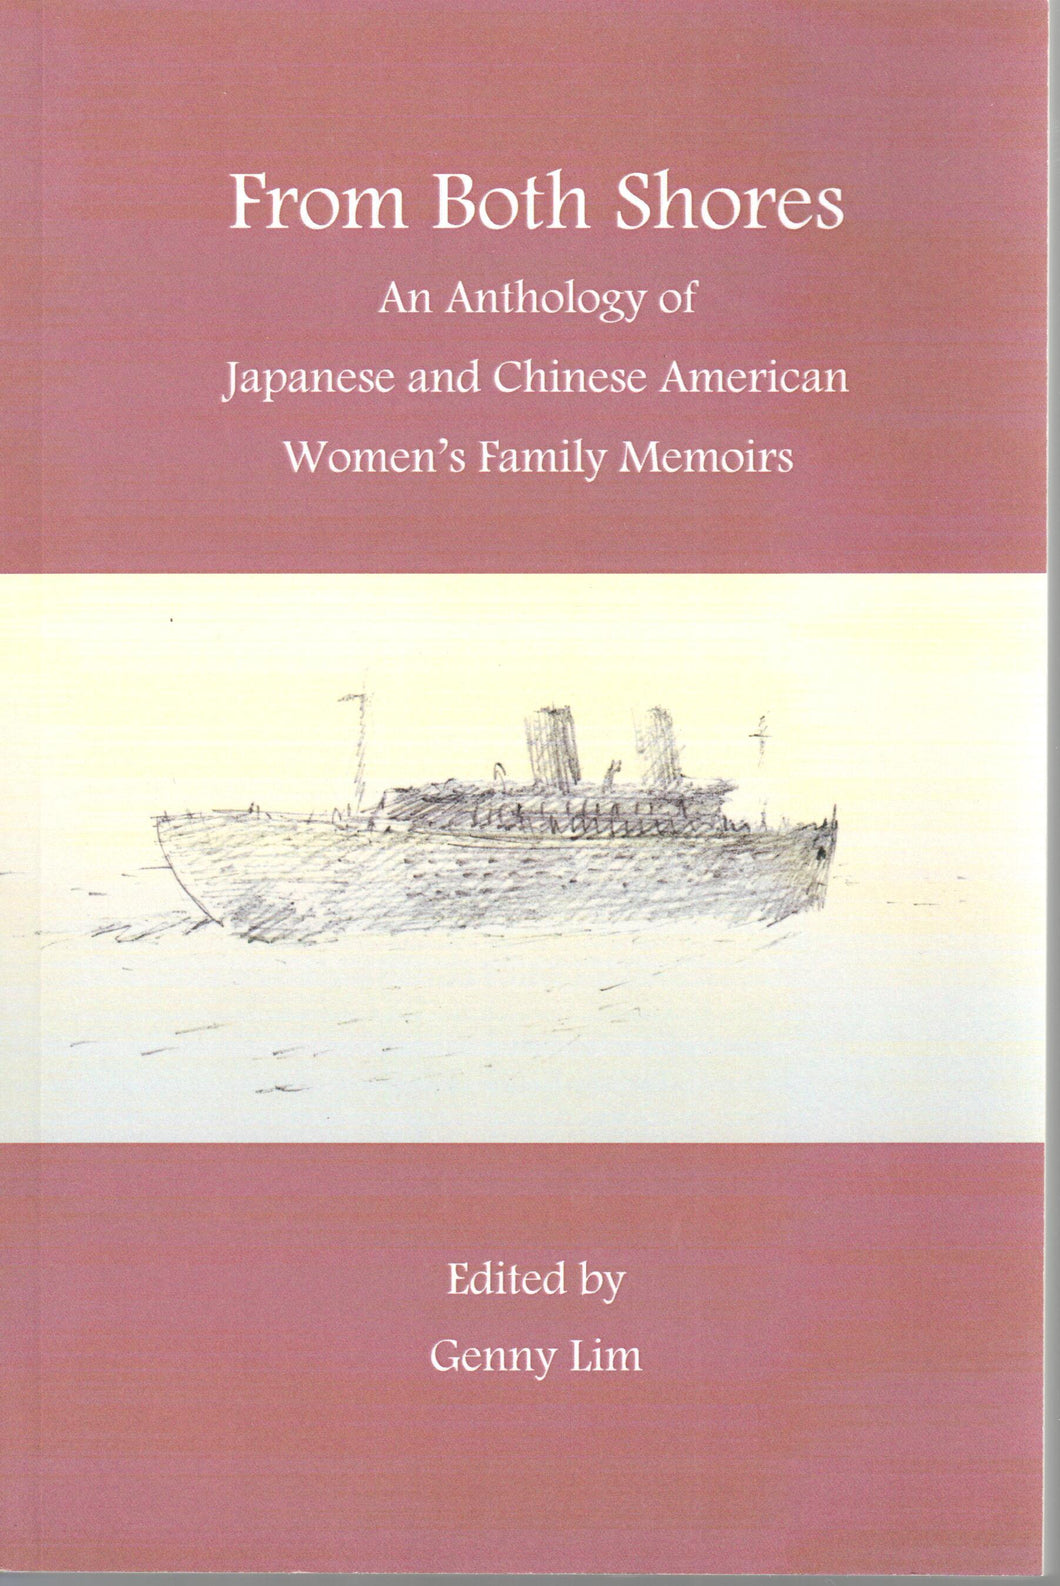 From Both Shores - An Anthology of Japanese and Chinese Women's Family Memoirs